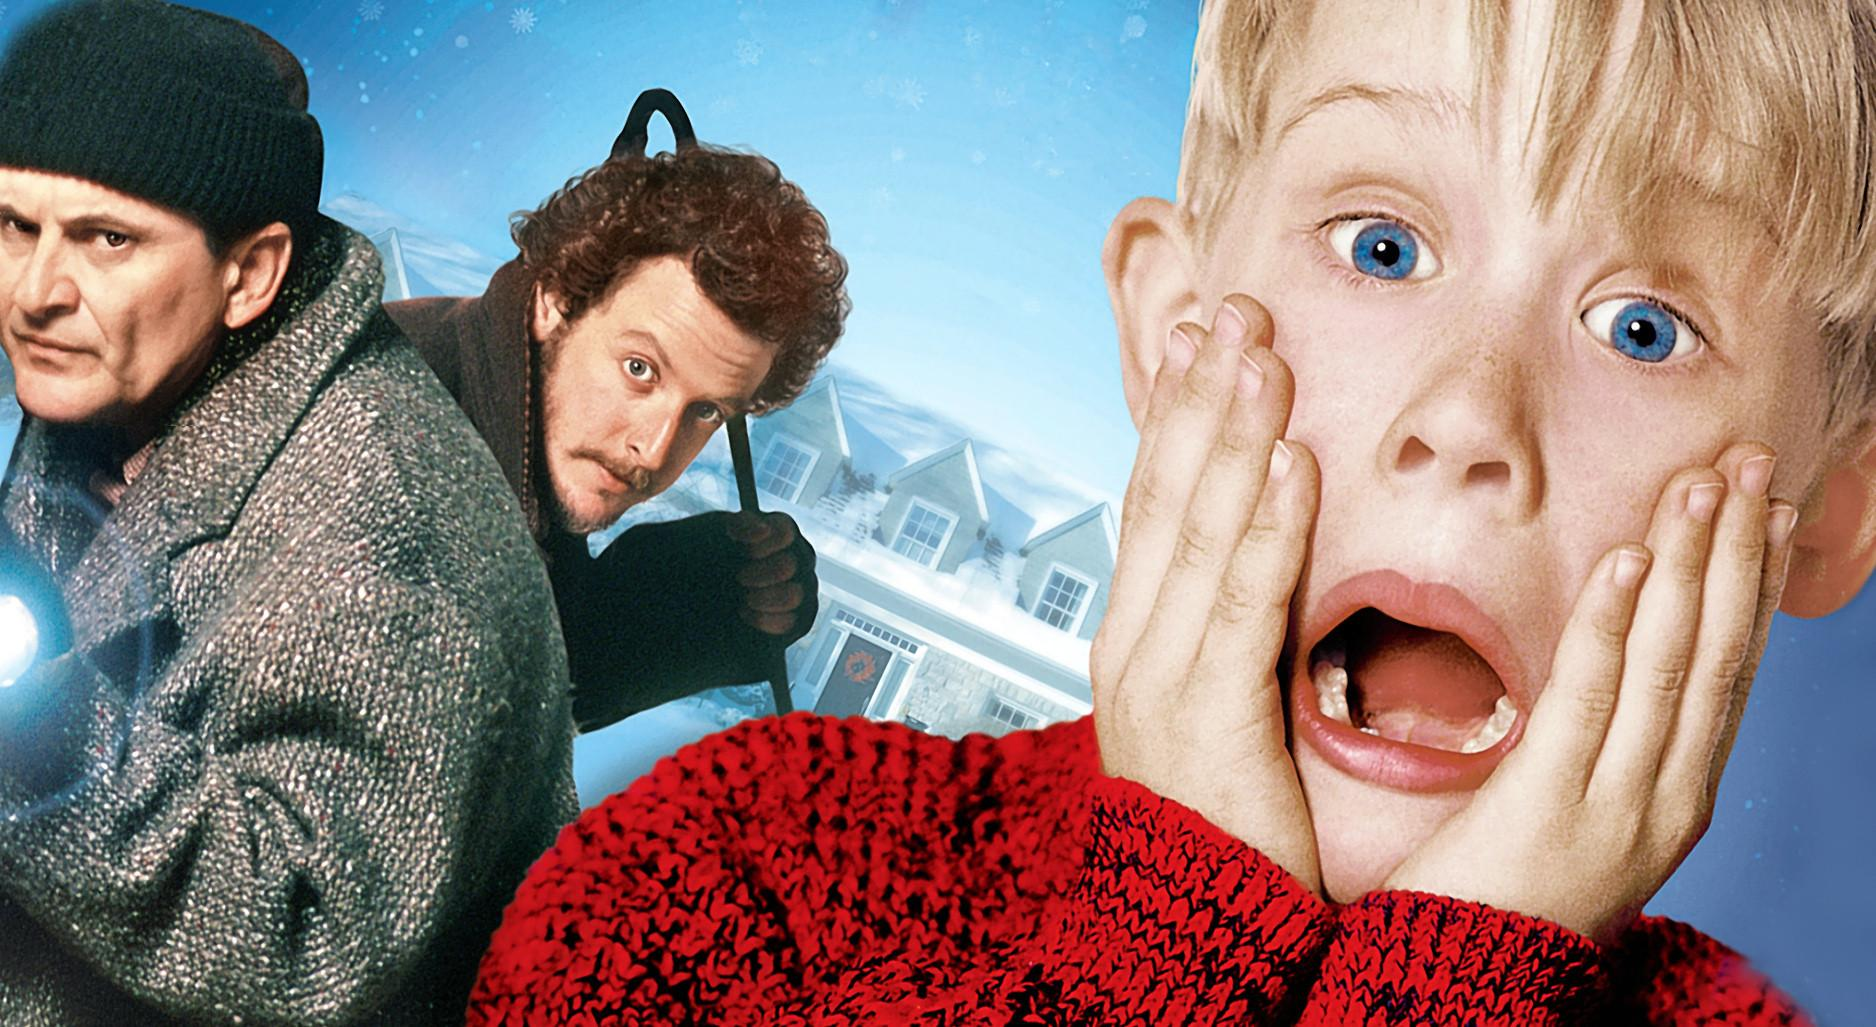 Joe Pesci, Daniel Stern and Macaulay Culkin in Home Alone